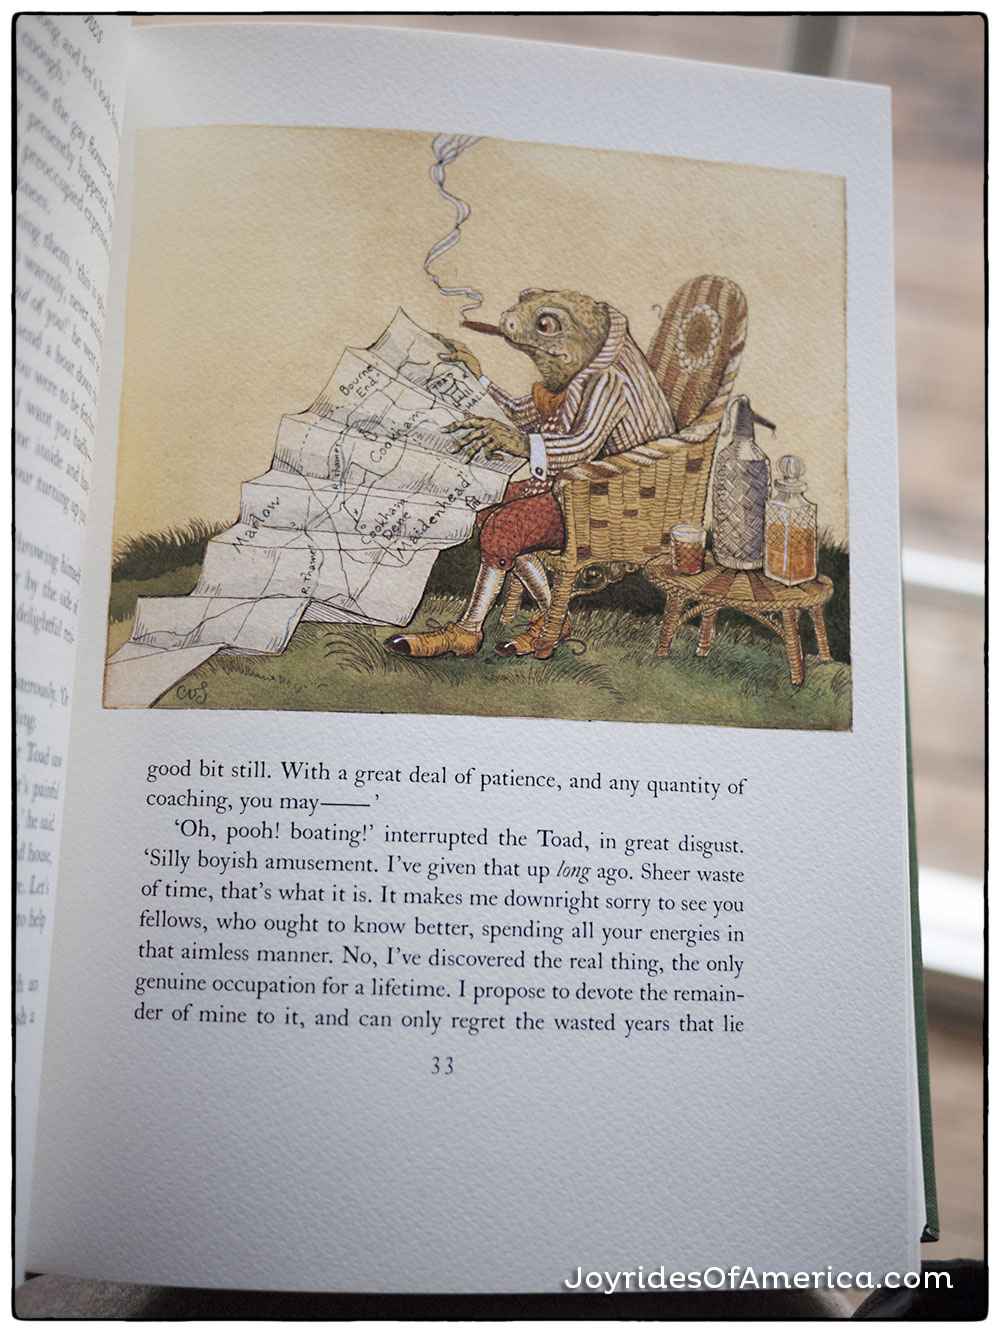 The Wind in the Willows  by Kenneth Grahame, illustrations by Charles van Sandwyk, published by the Folio Society.